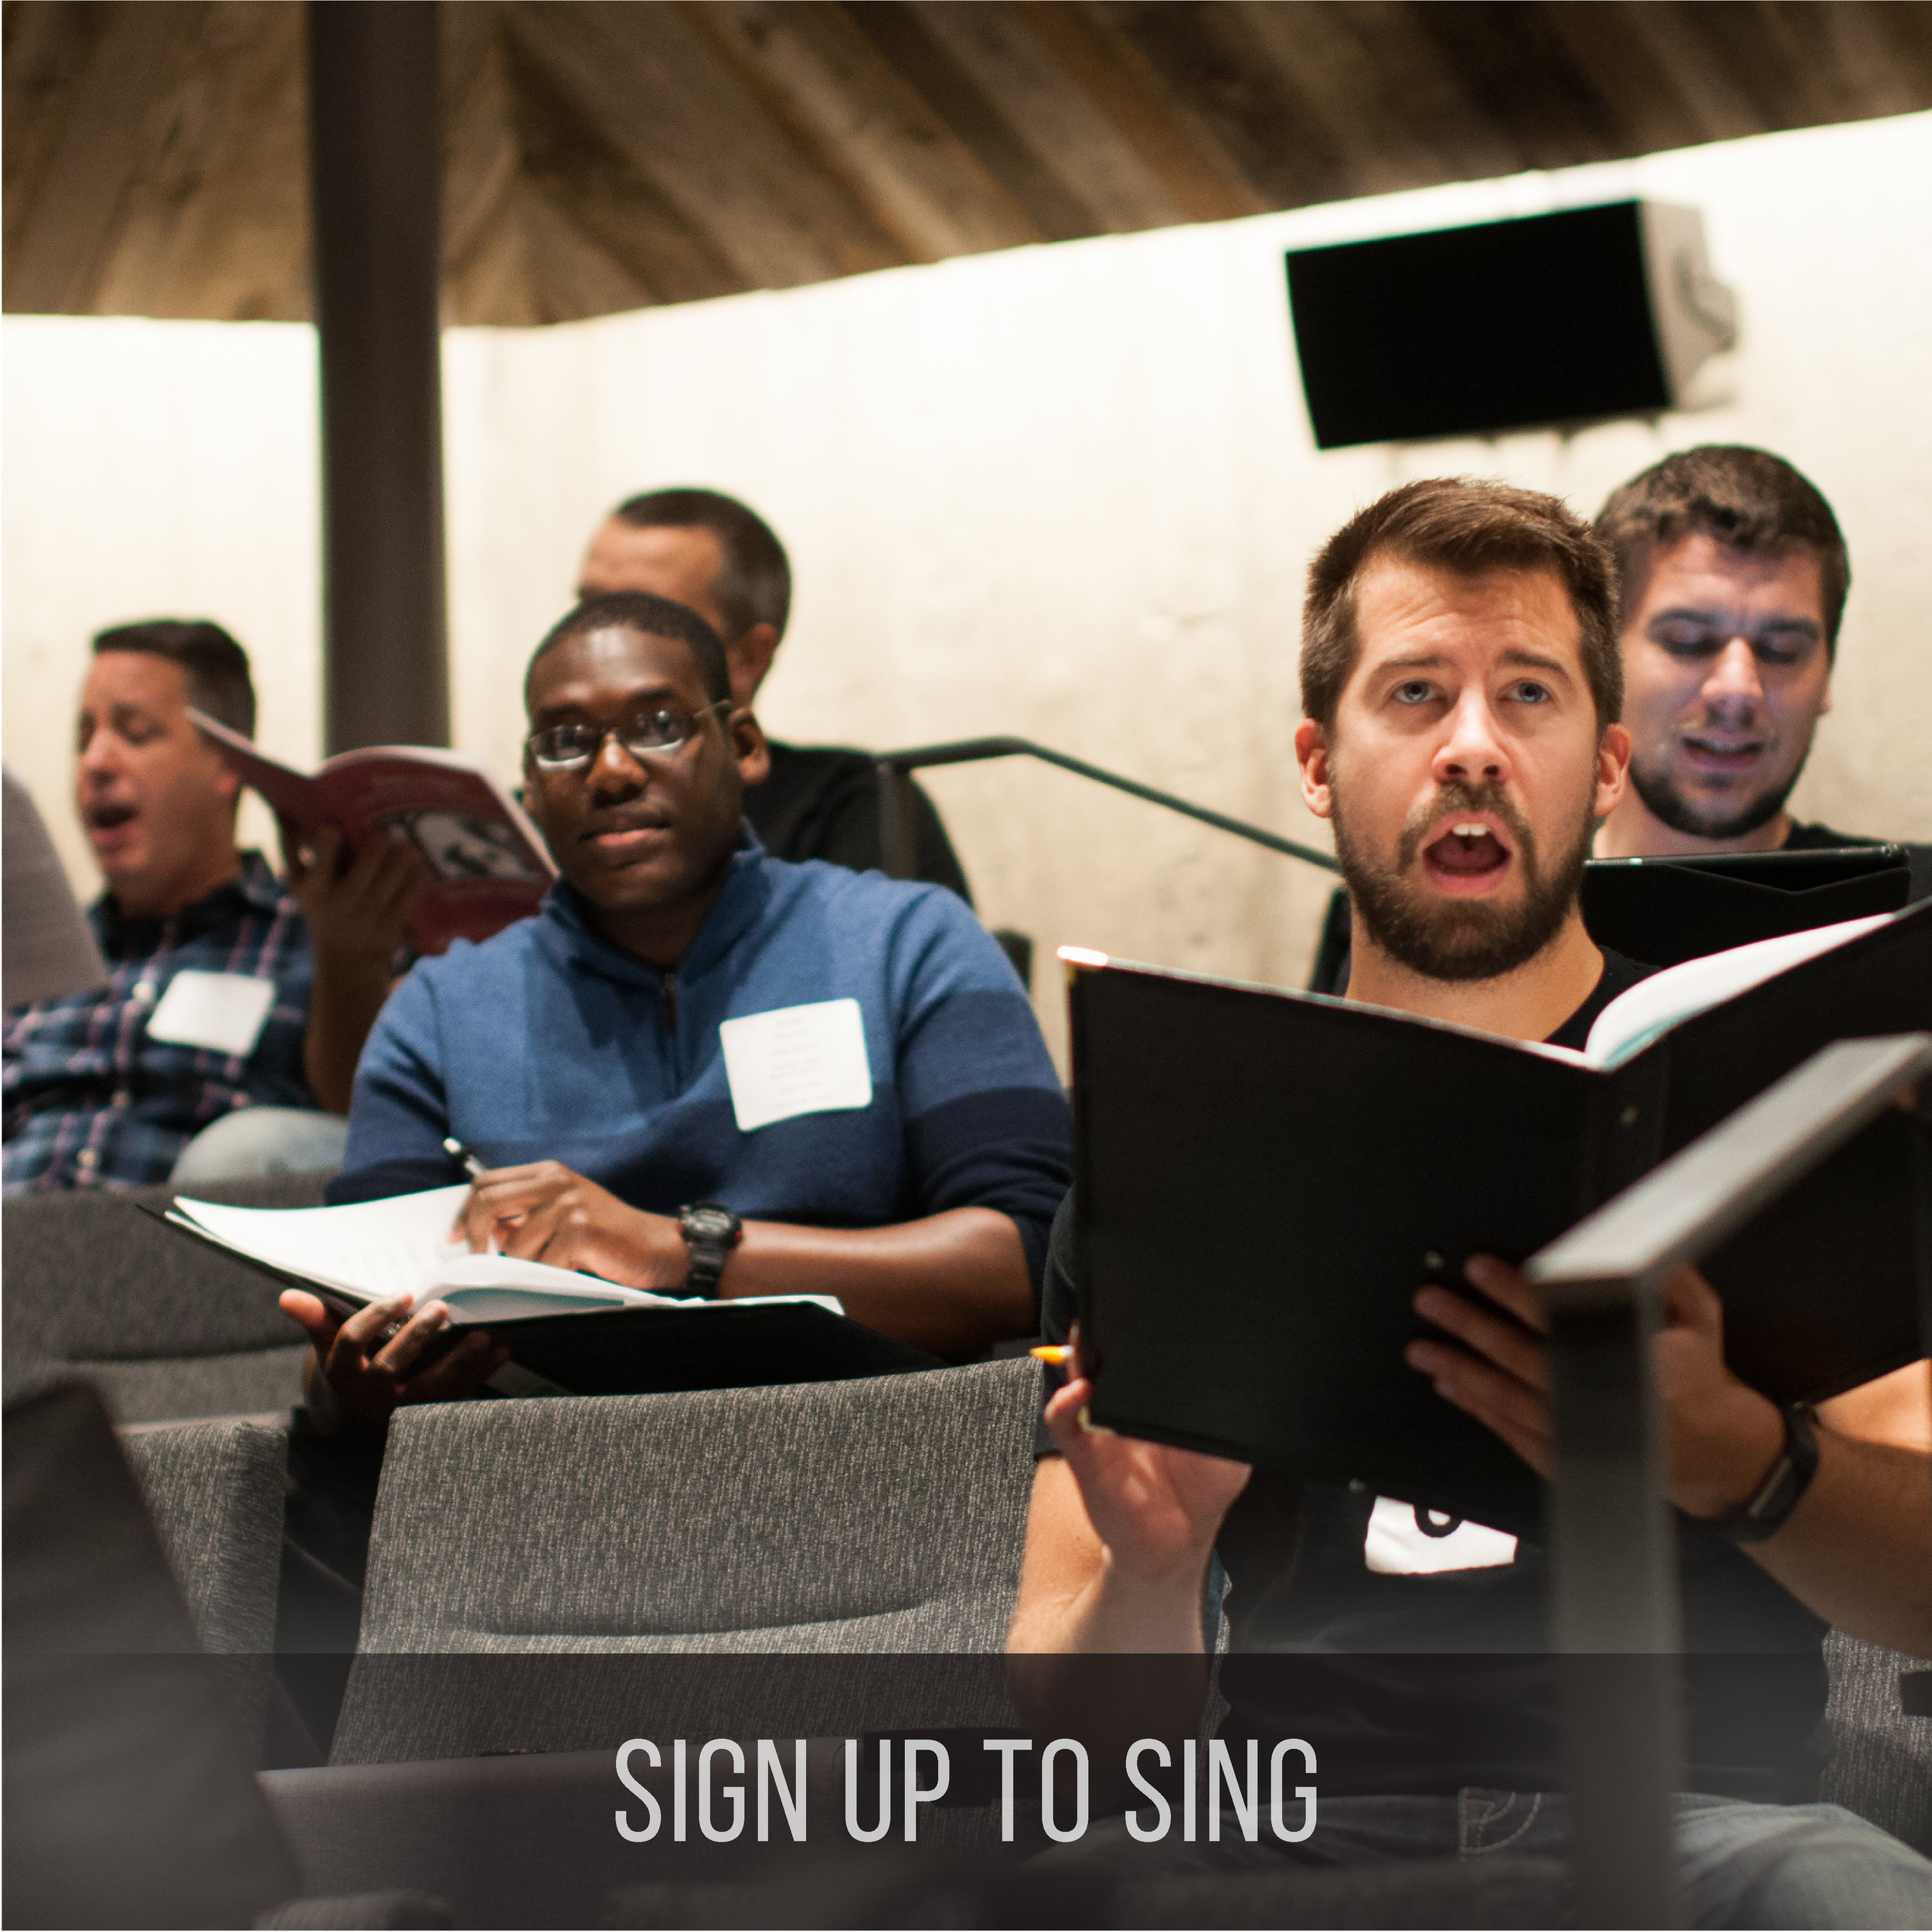 Home_Page_Image_Sign_Up_To_Sing_1.jpg